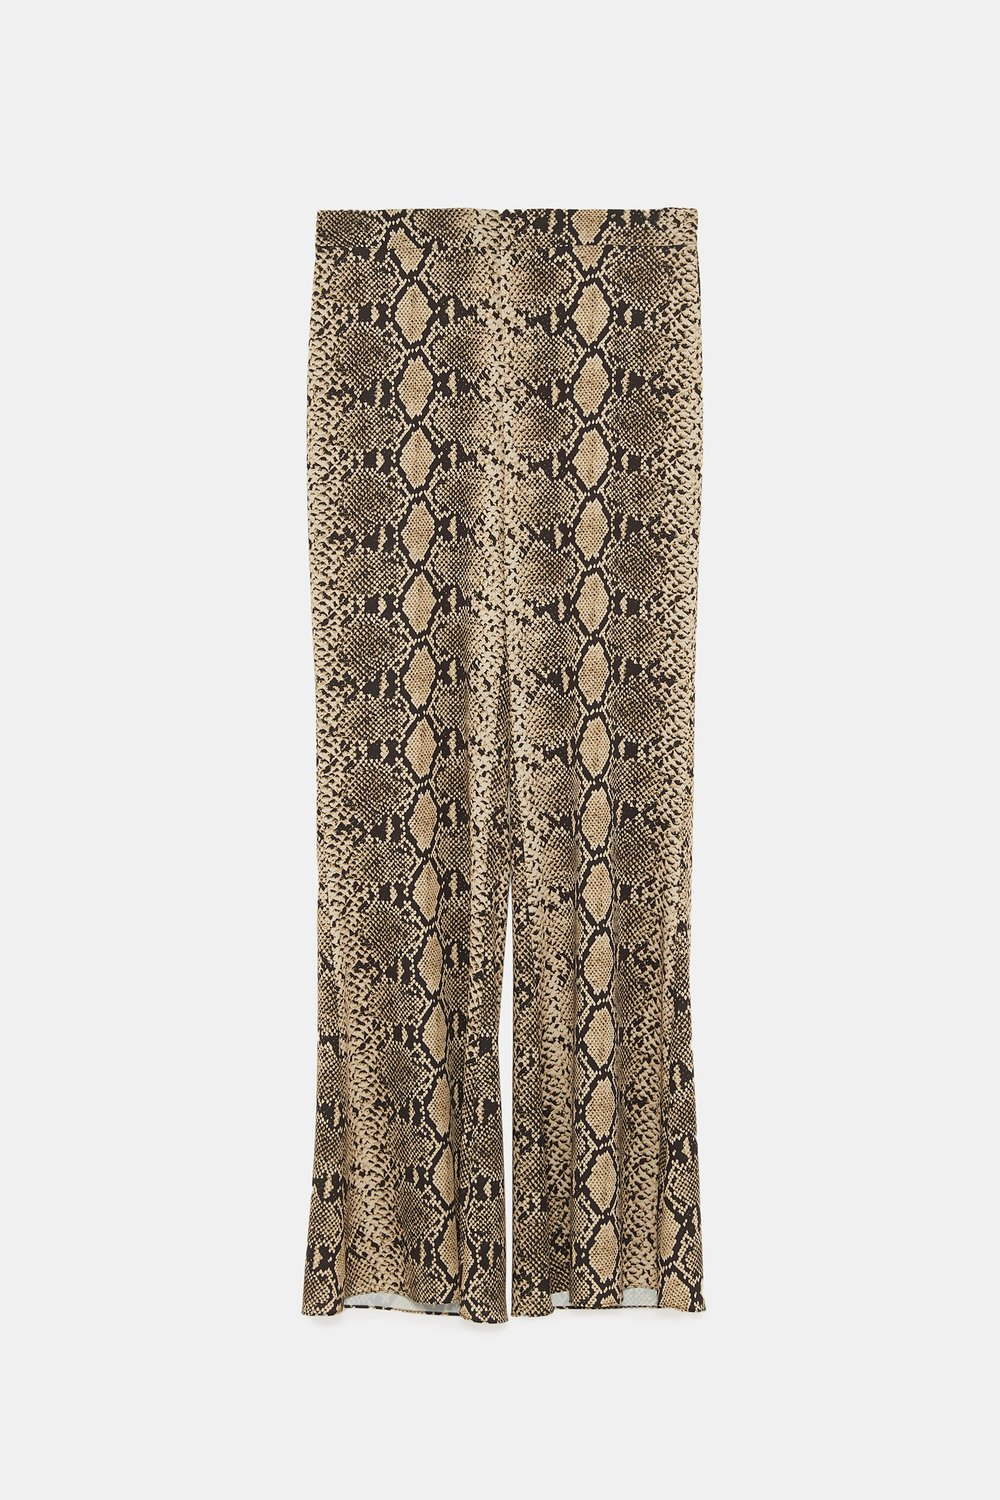 https://www.zara.com/ca/en/flared-pants-with-snakeskin-print-p08017711.html?v1=7392005&v2=1074660